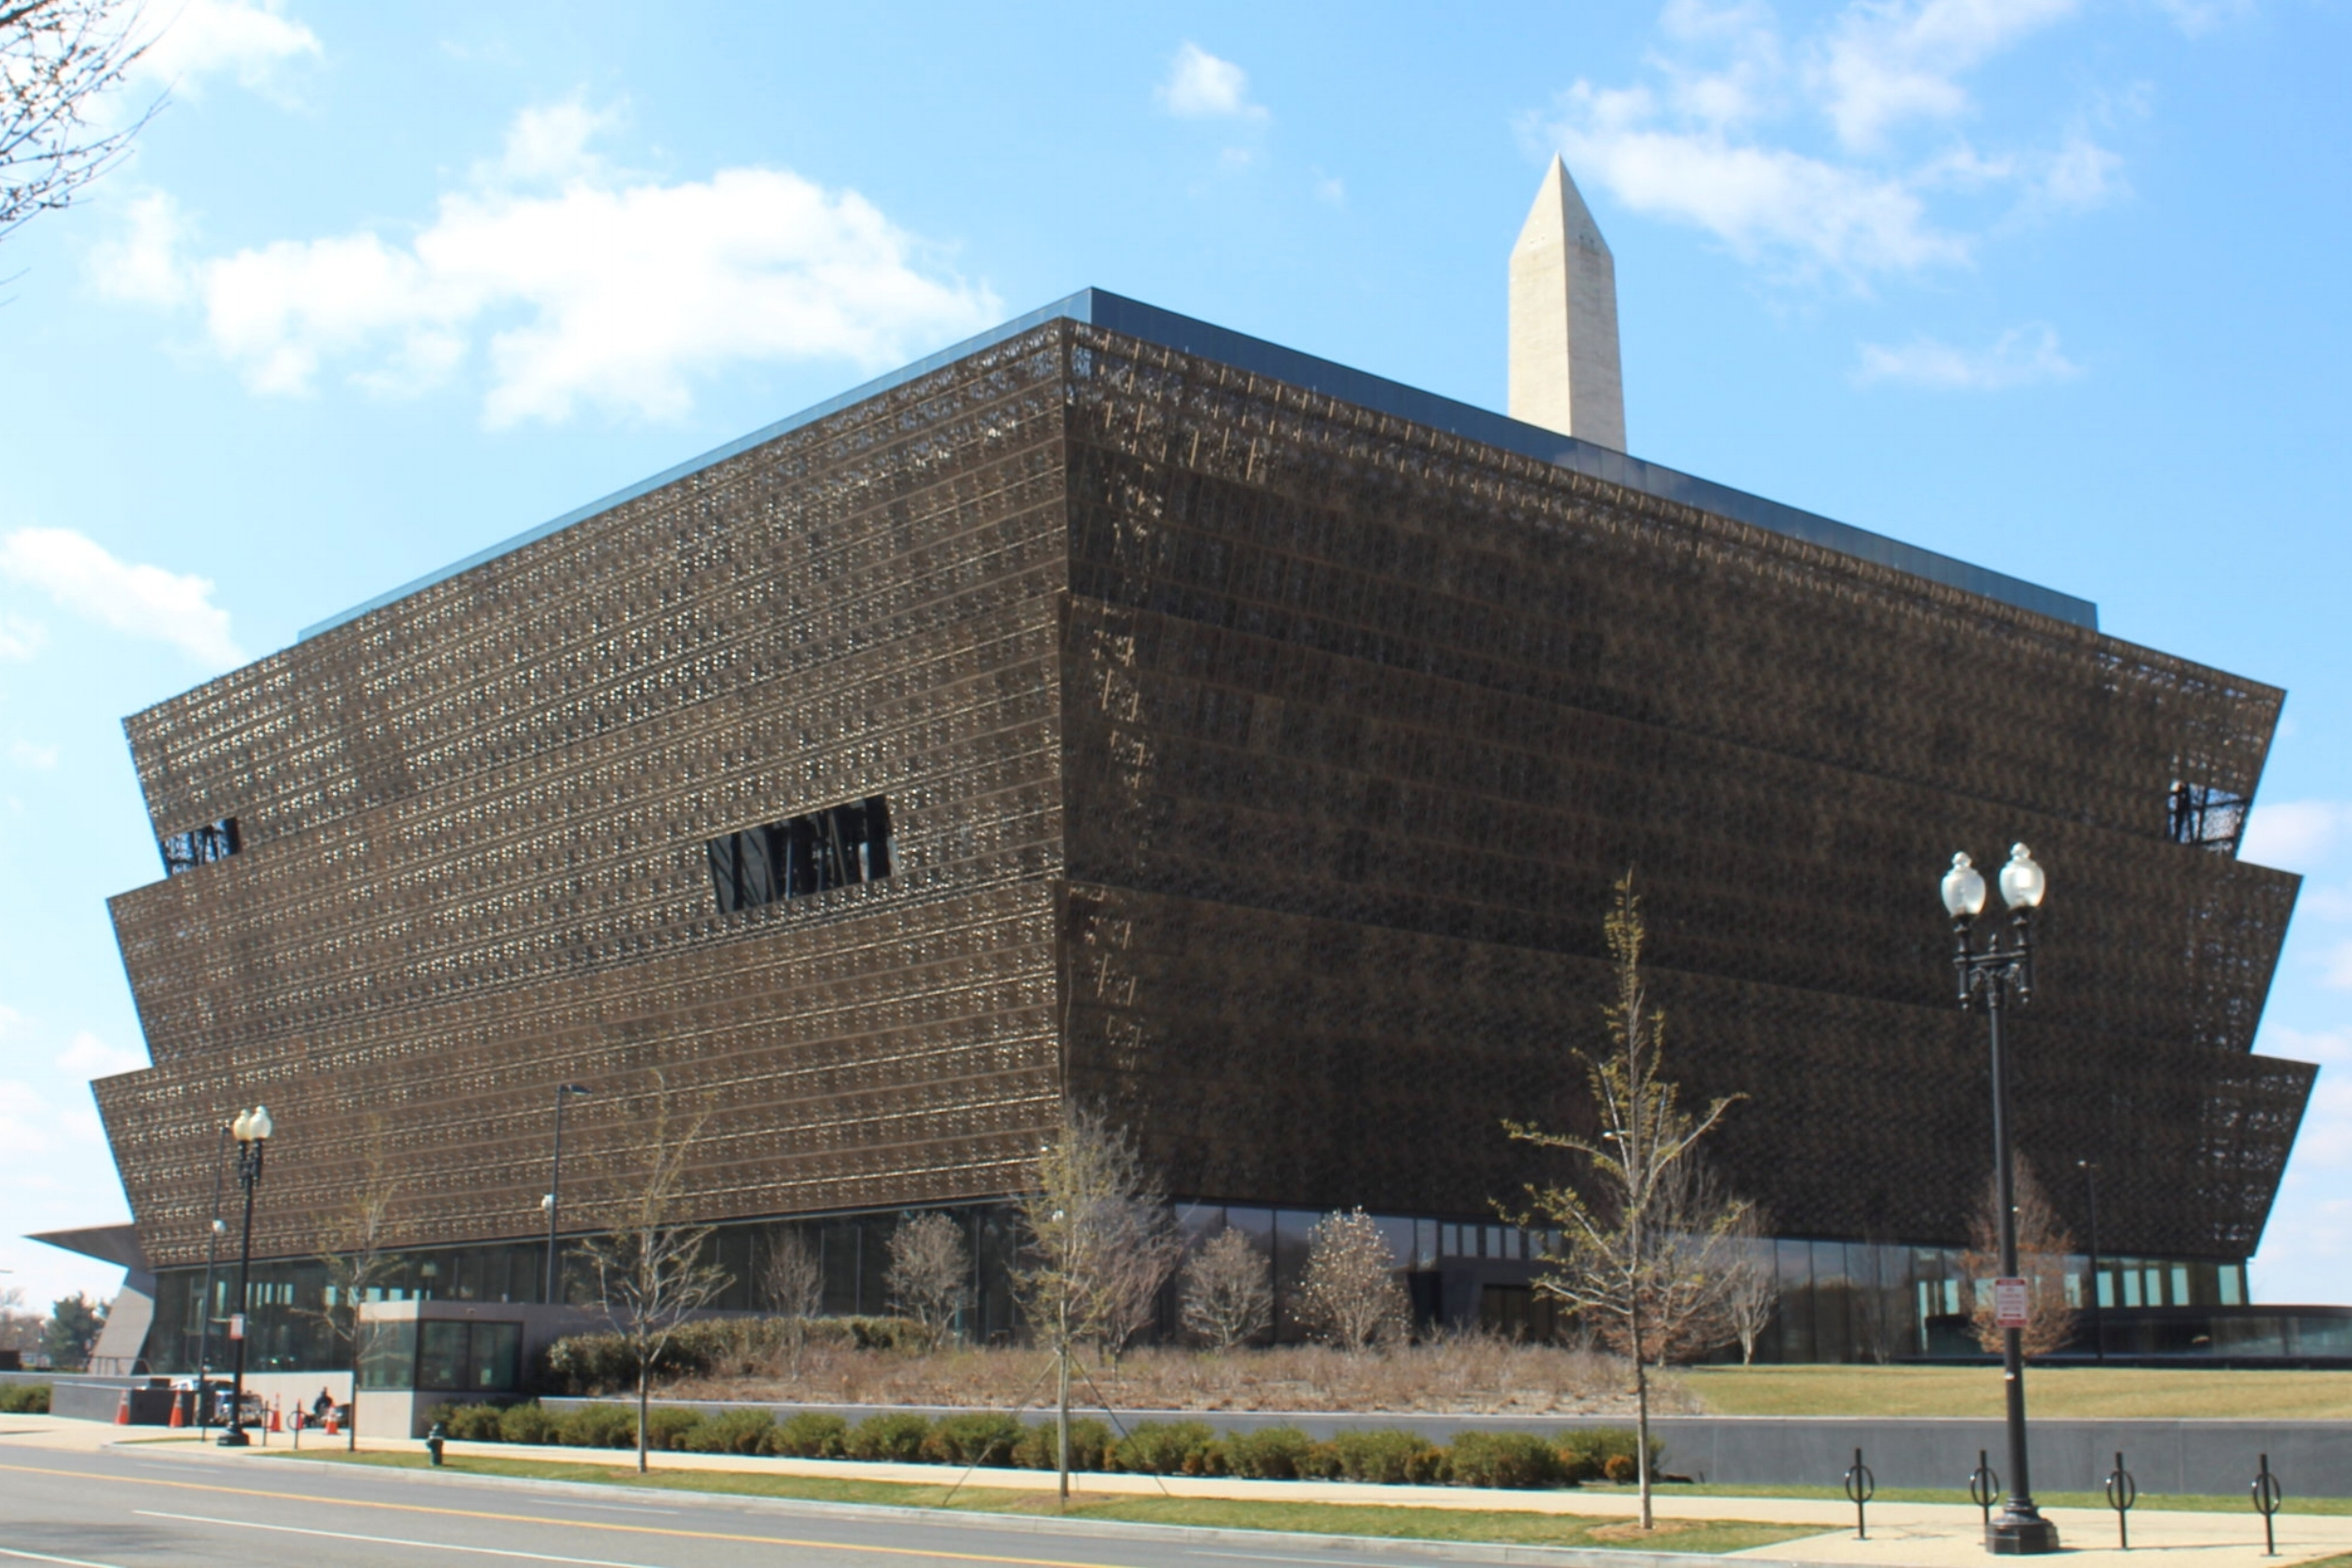 The Smithsonian's National Museum of African American History and Culture